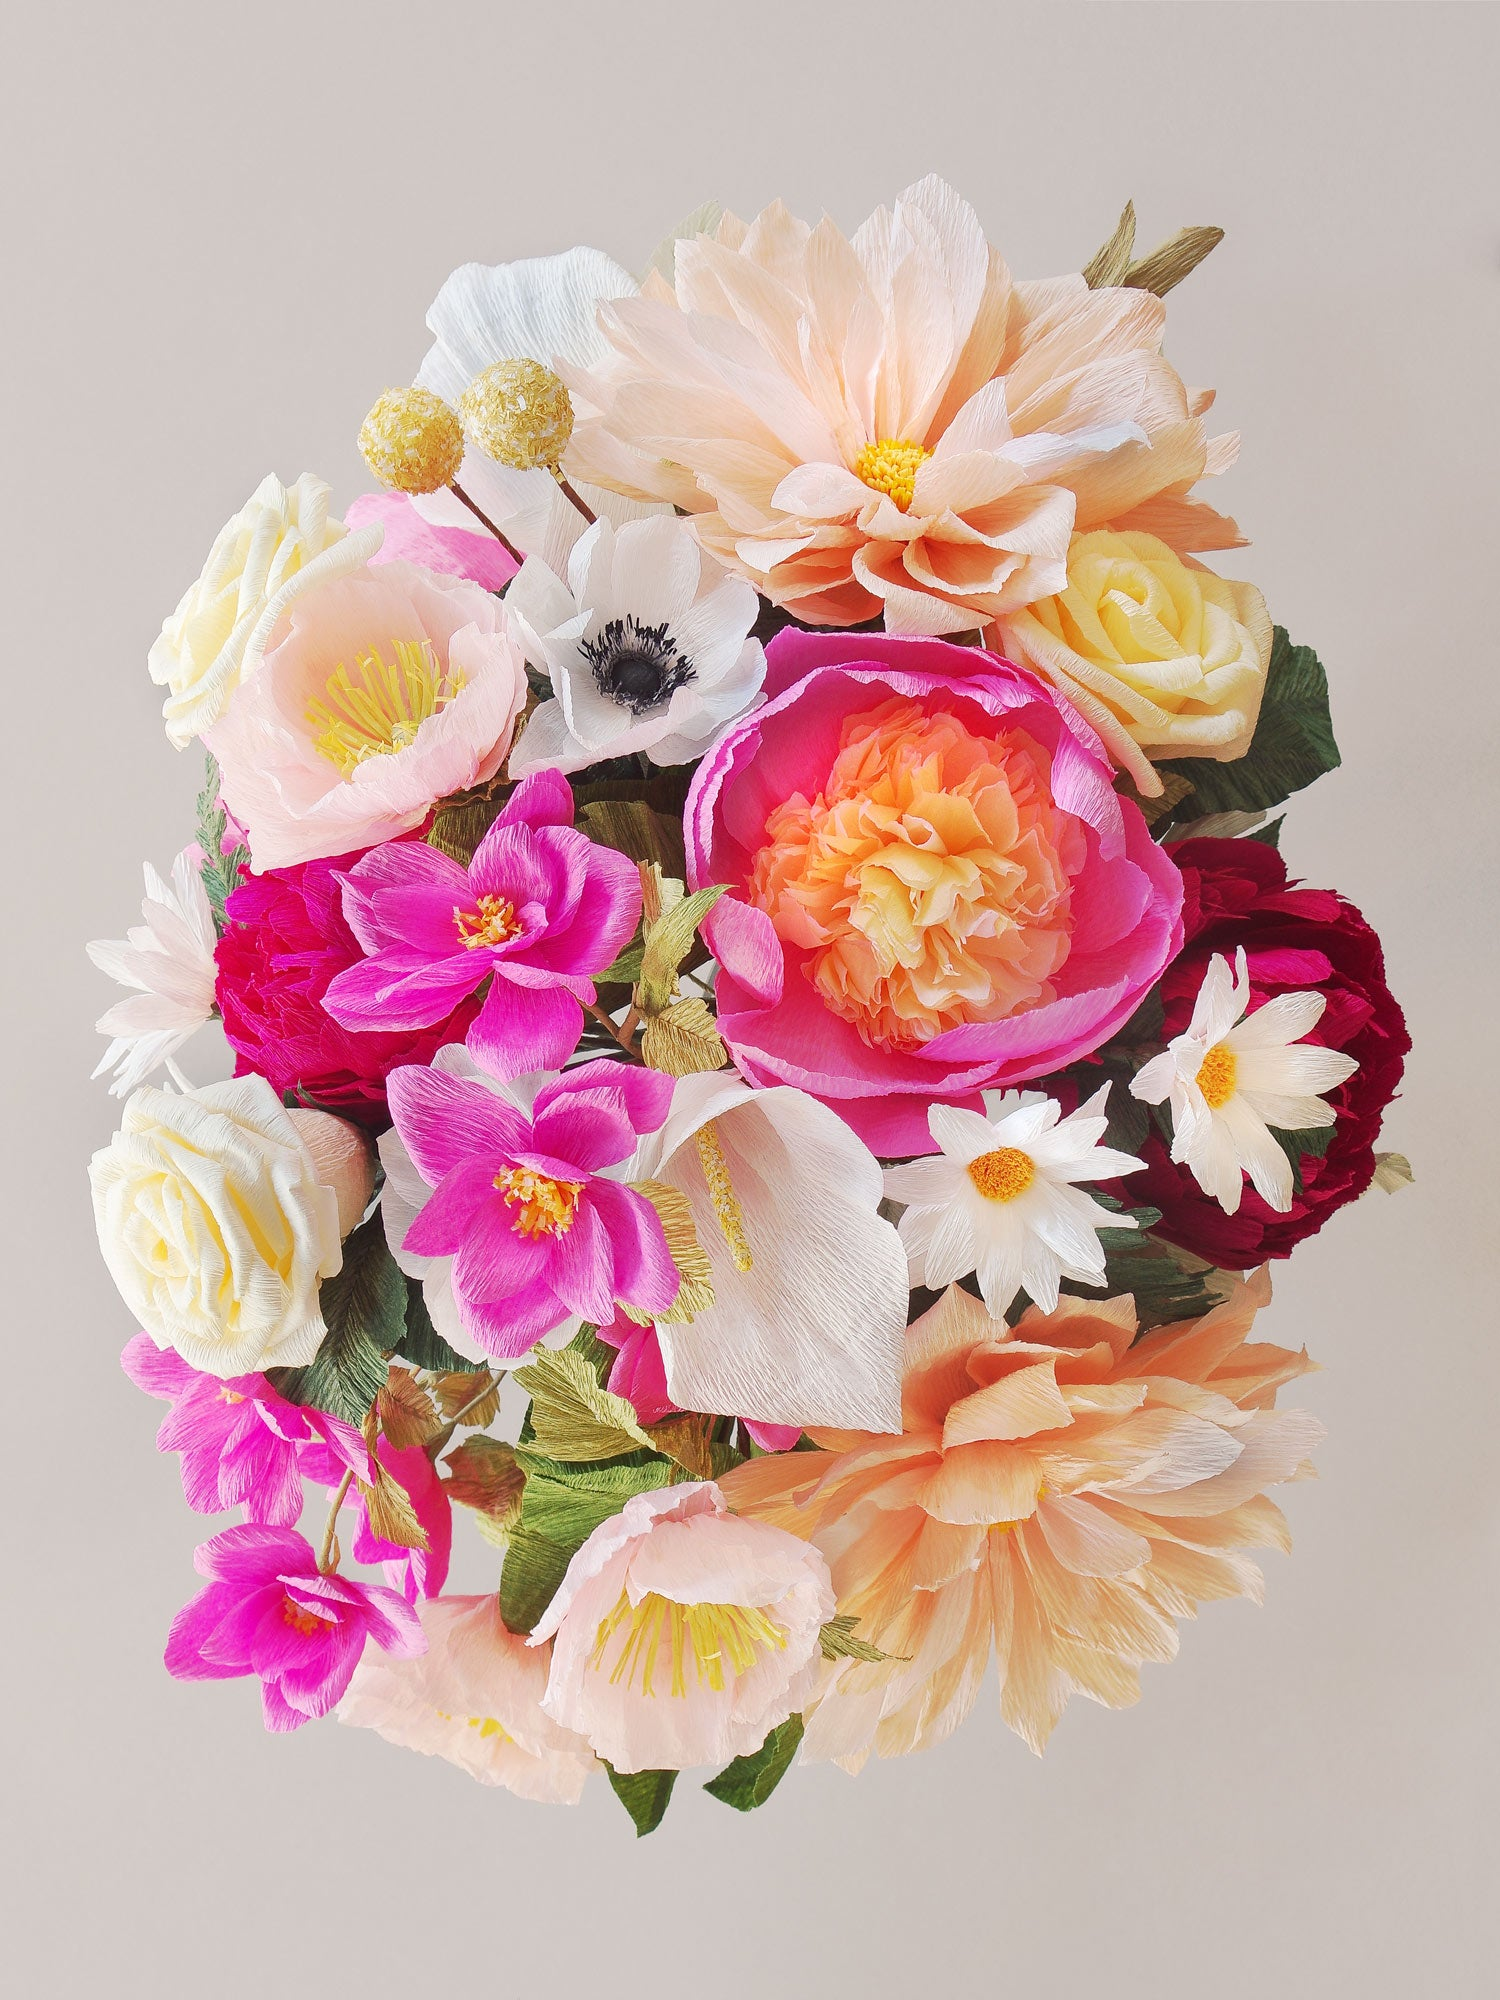 _<h1>Overwhelm Them With Blooms</h1><p> Various hues of pink and peach with hints of ivory and white; 2 varieties of peonies, peach dahlias, pink spray roses, white anemone, white daisies, pale pink poppies, white calla lilies, and cream roses complete with assorted shades of greenery.</p>